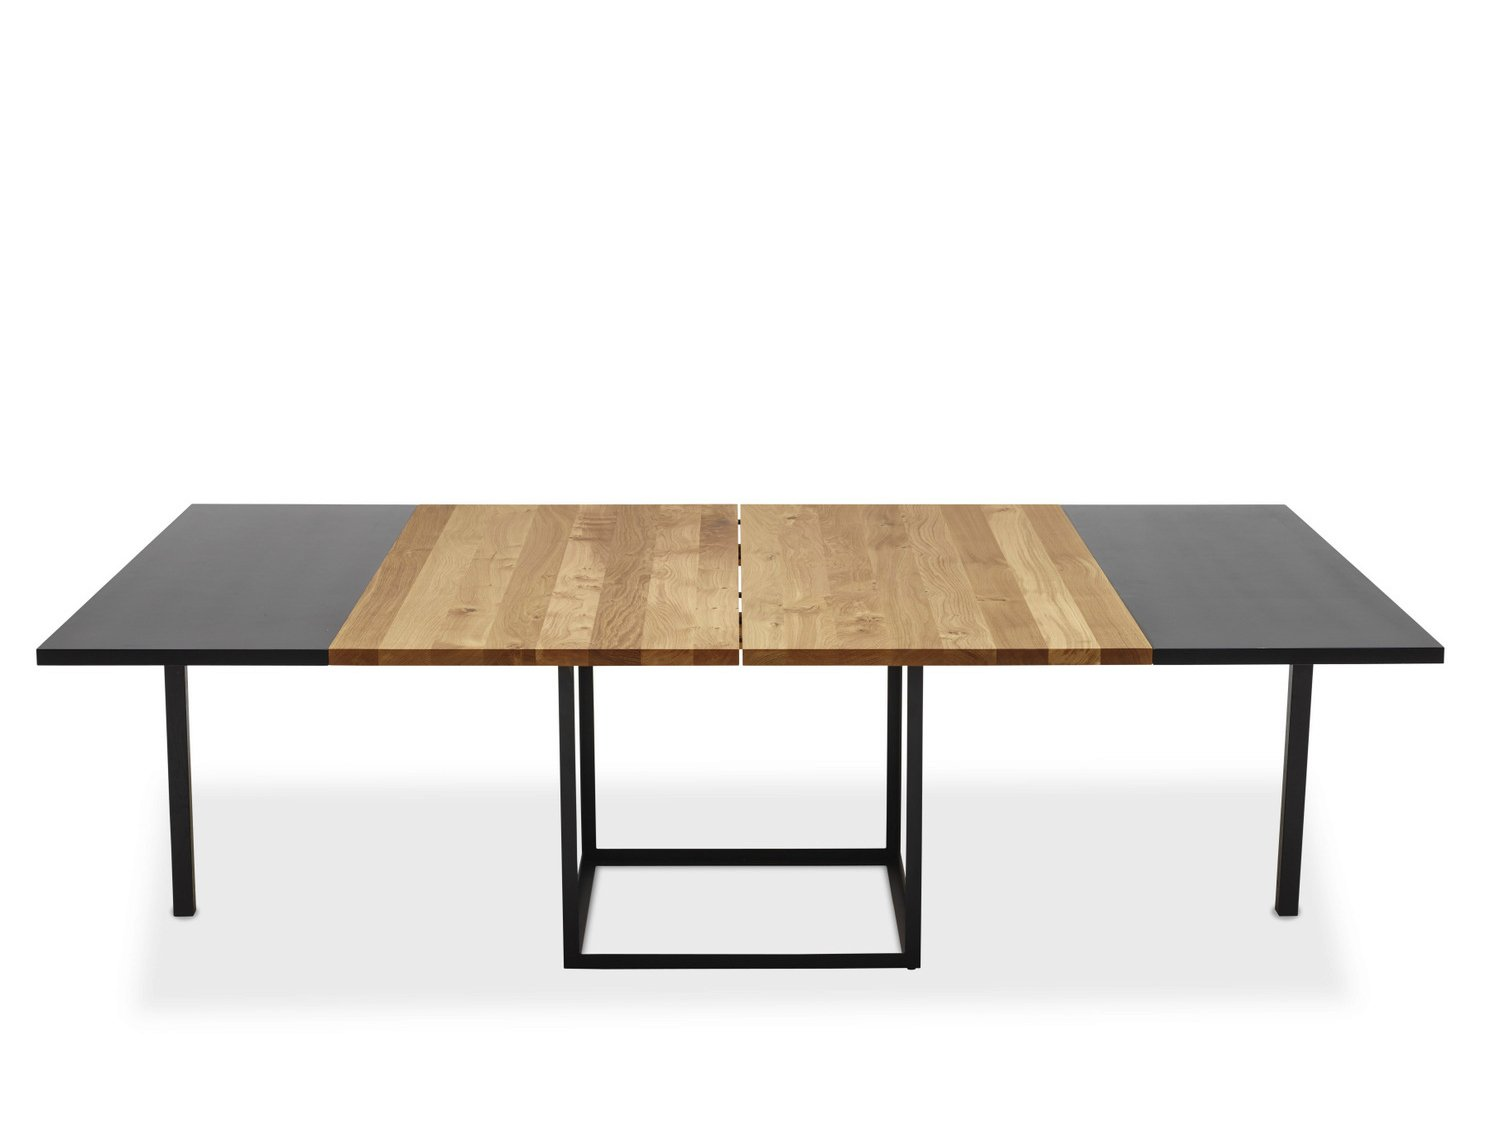 Jewel table carr e by dk3 design s ren juul for Table carree 8 personnes avec rallonge